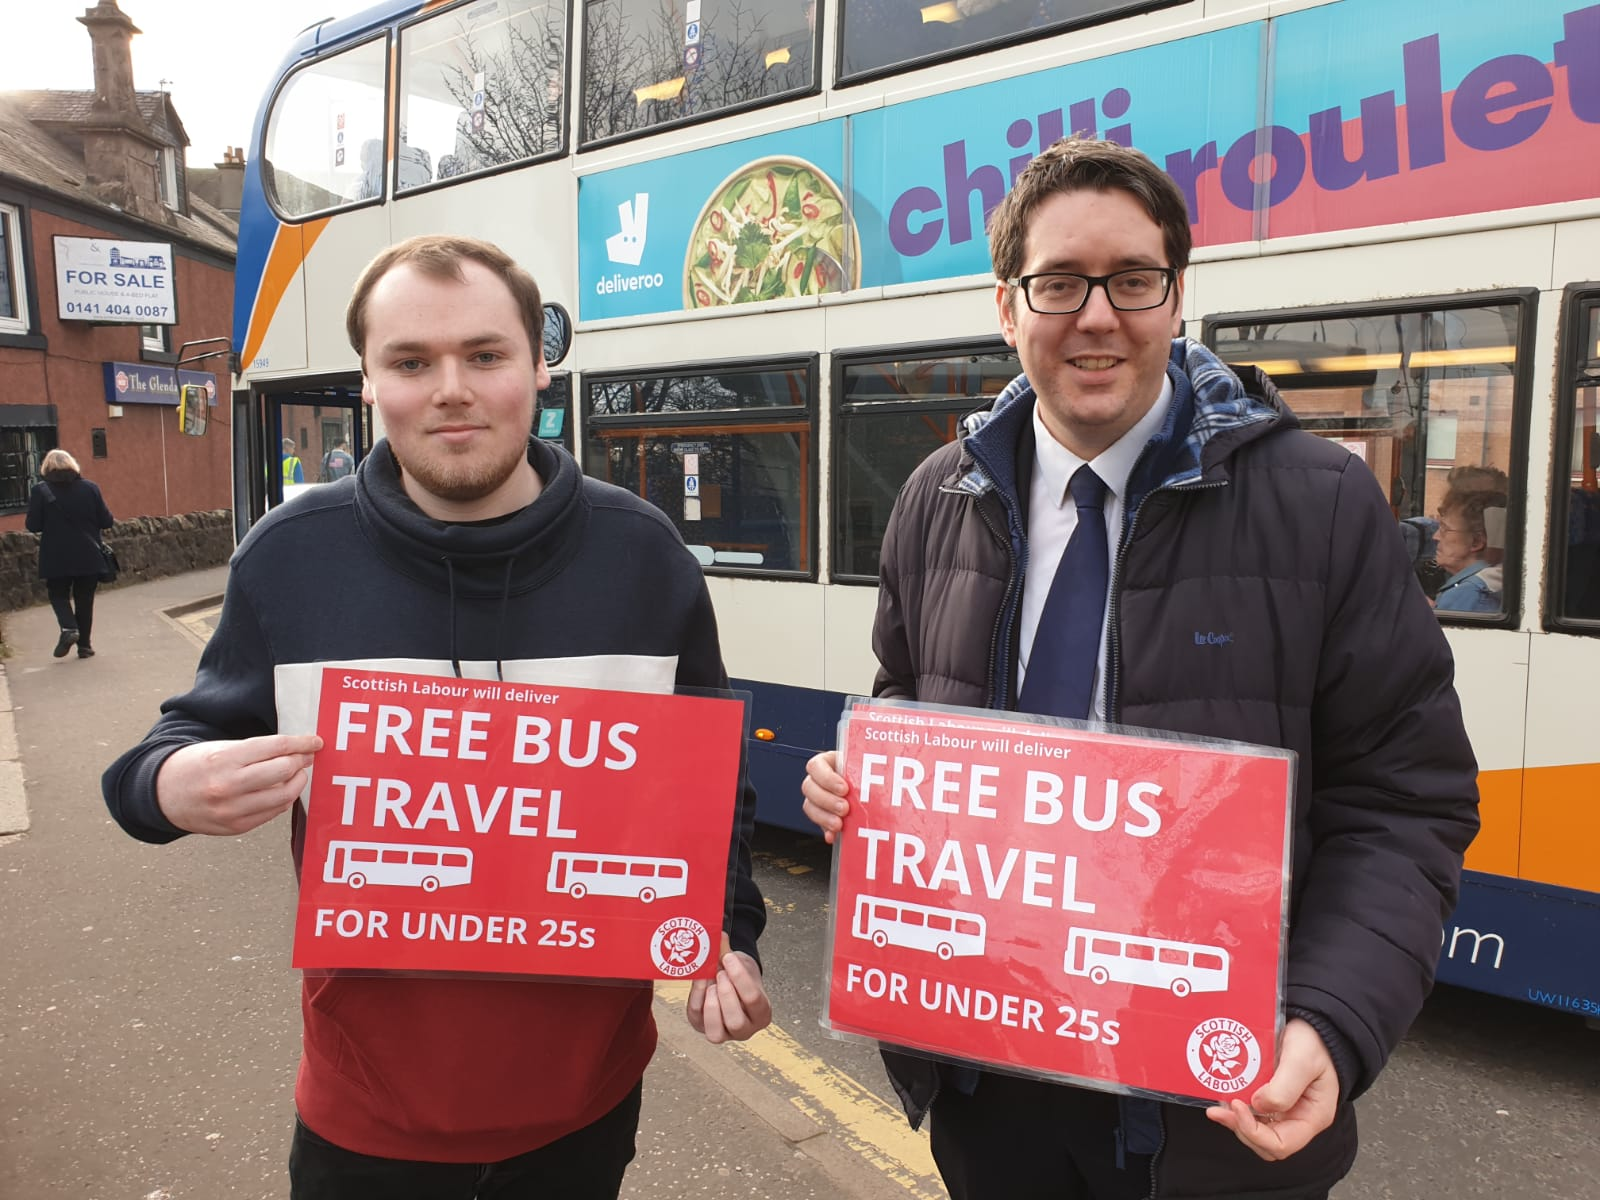 Neil Bibby MSP backs Scottish Labour's provision for free bus travel for under 25s